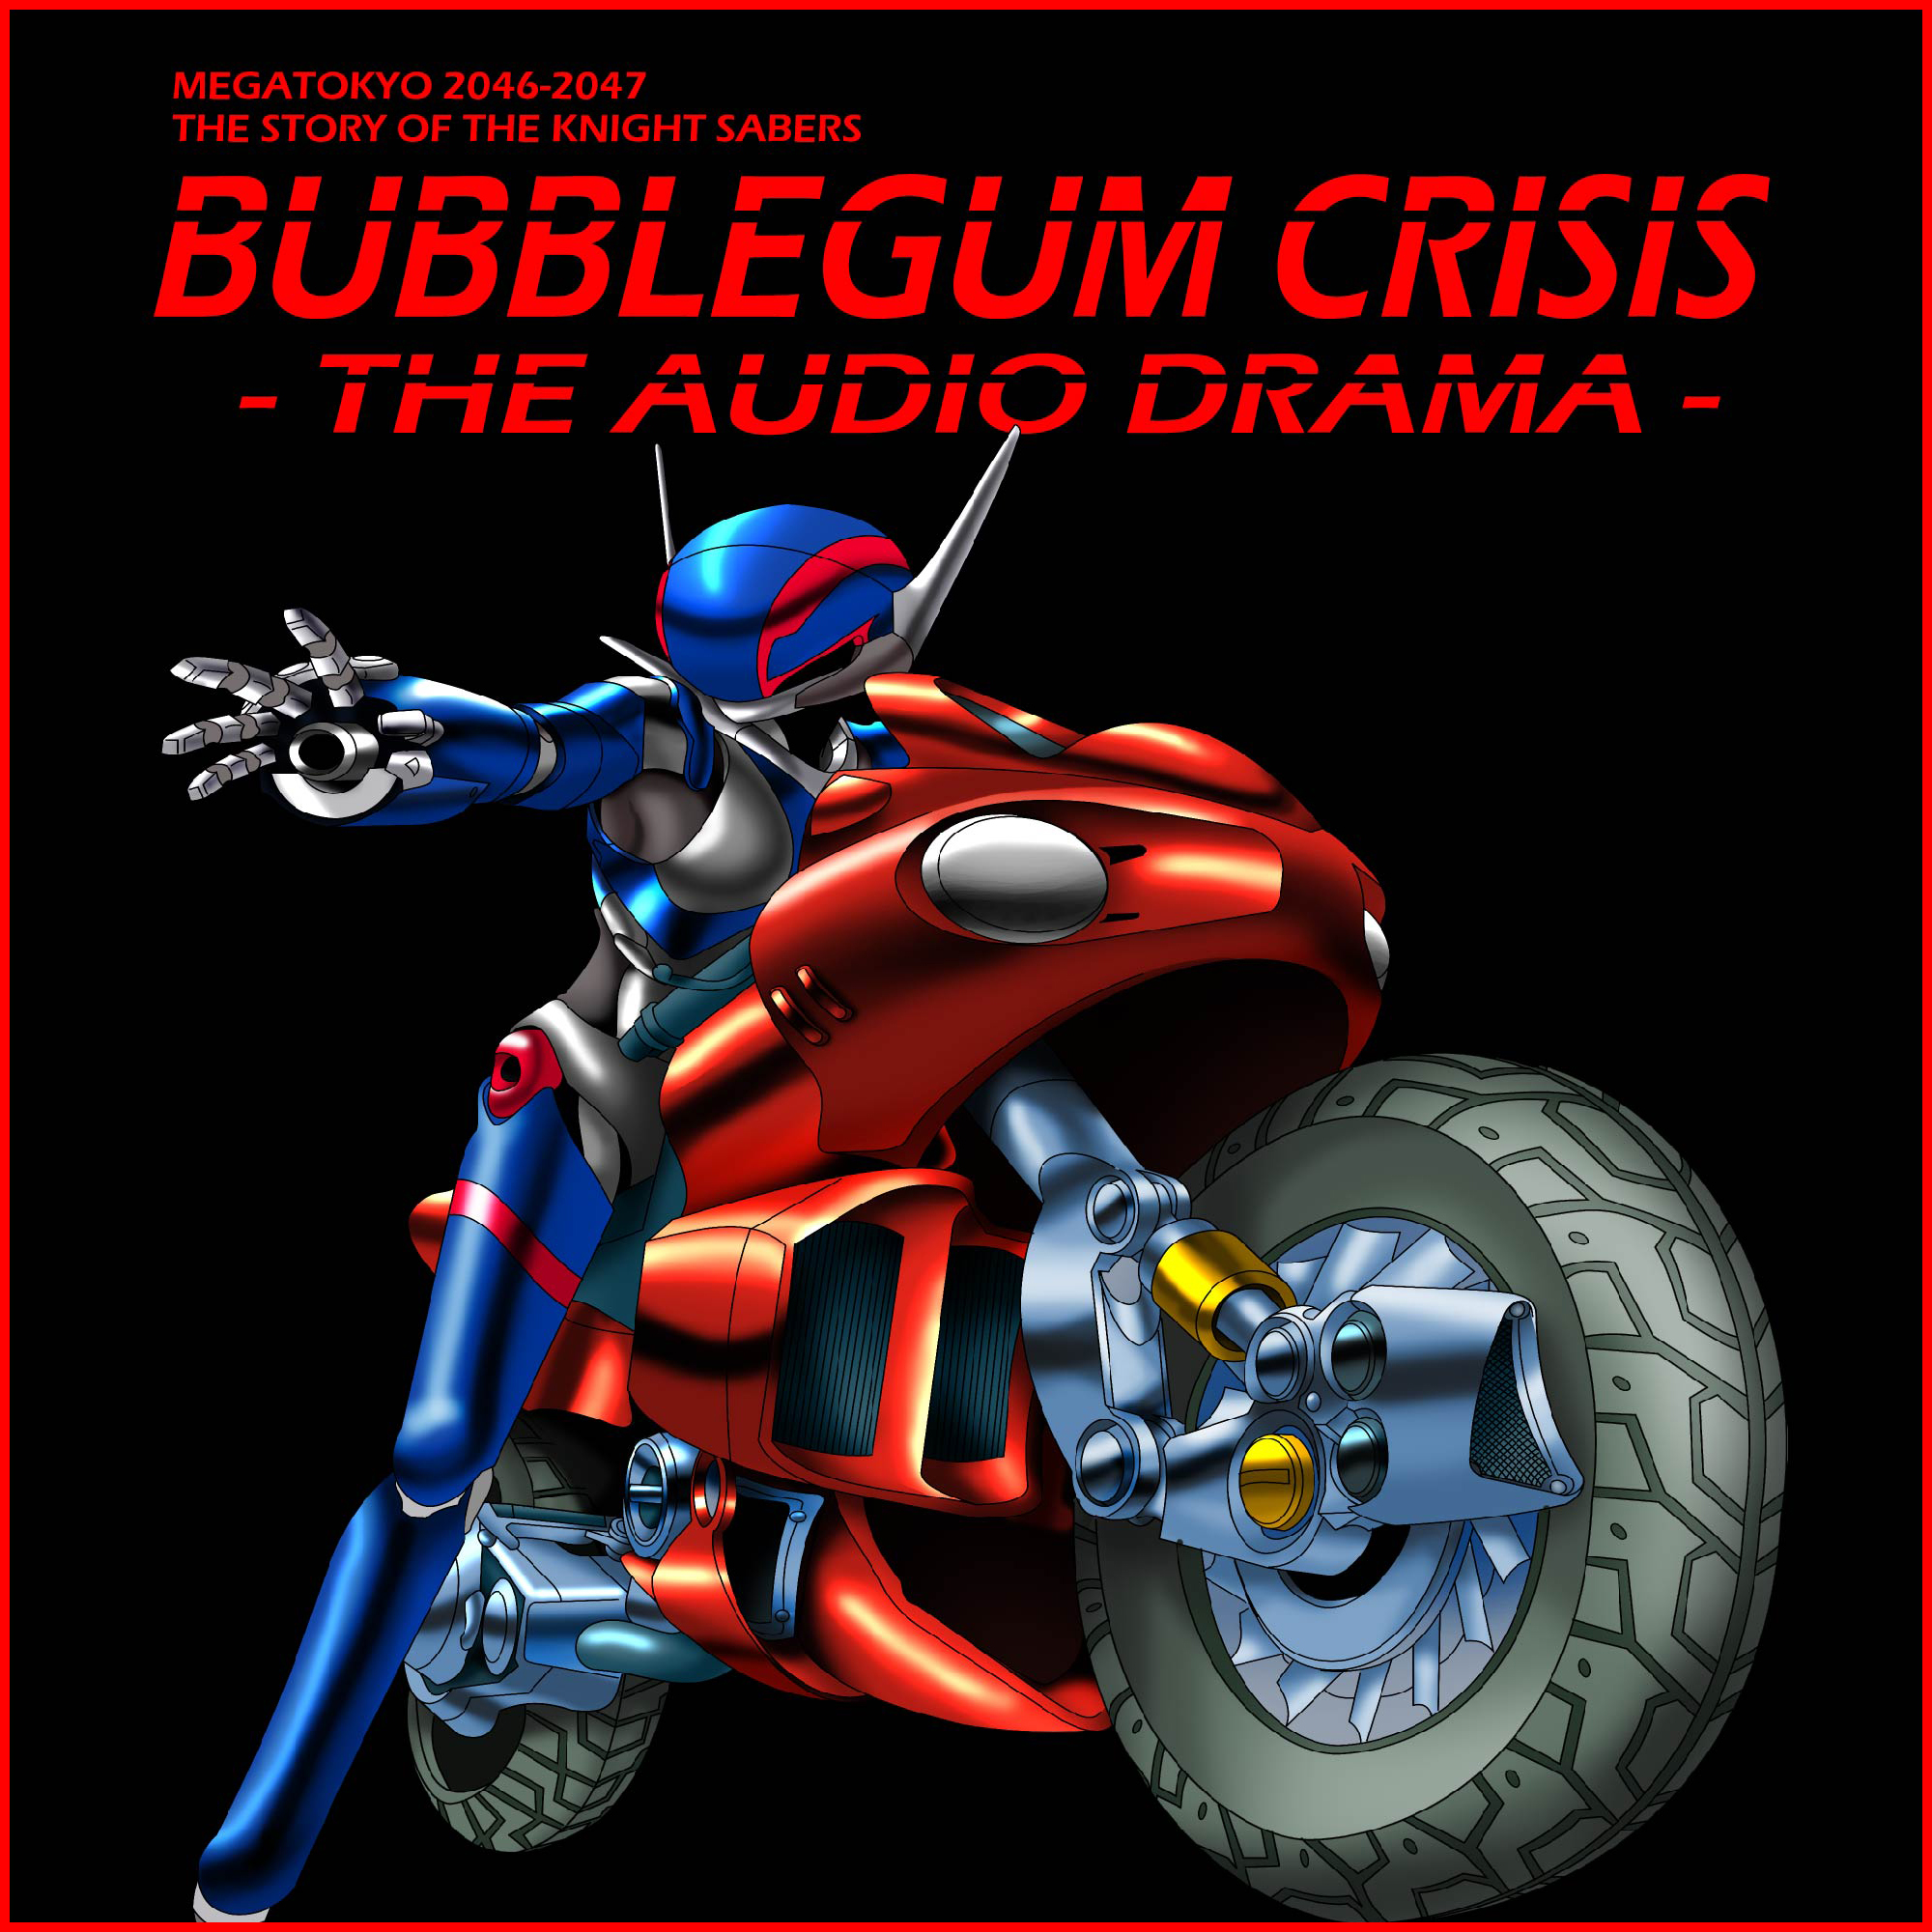 Bubblegum Crisis - The Audio Drama